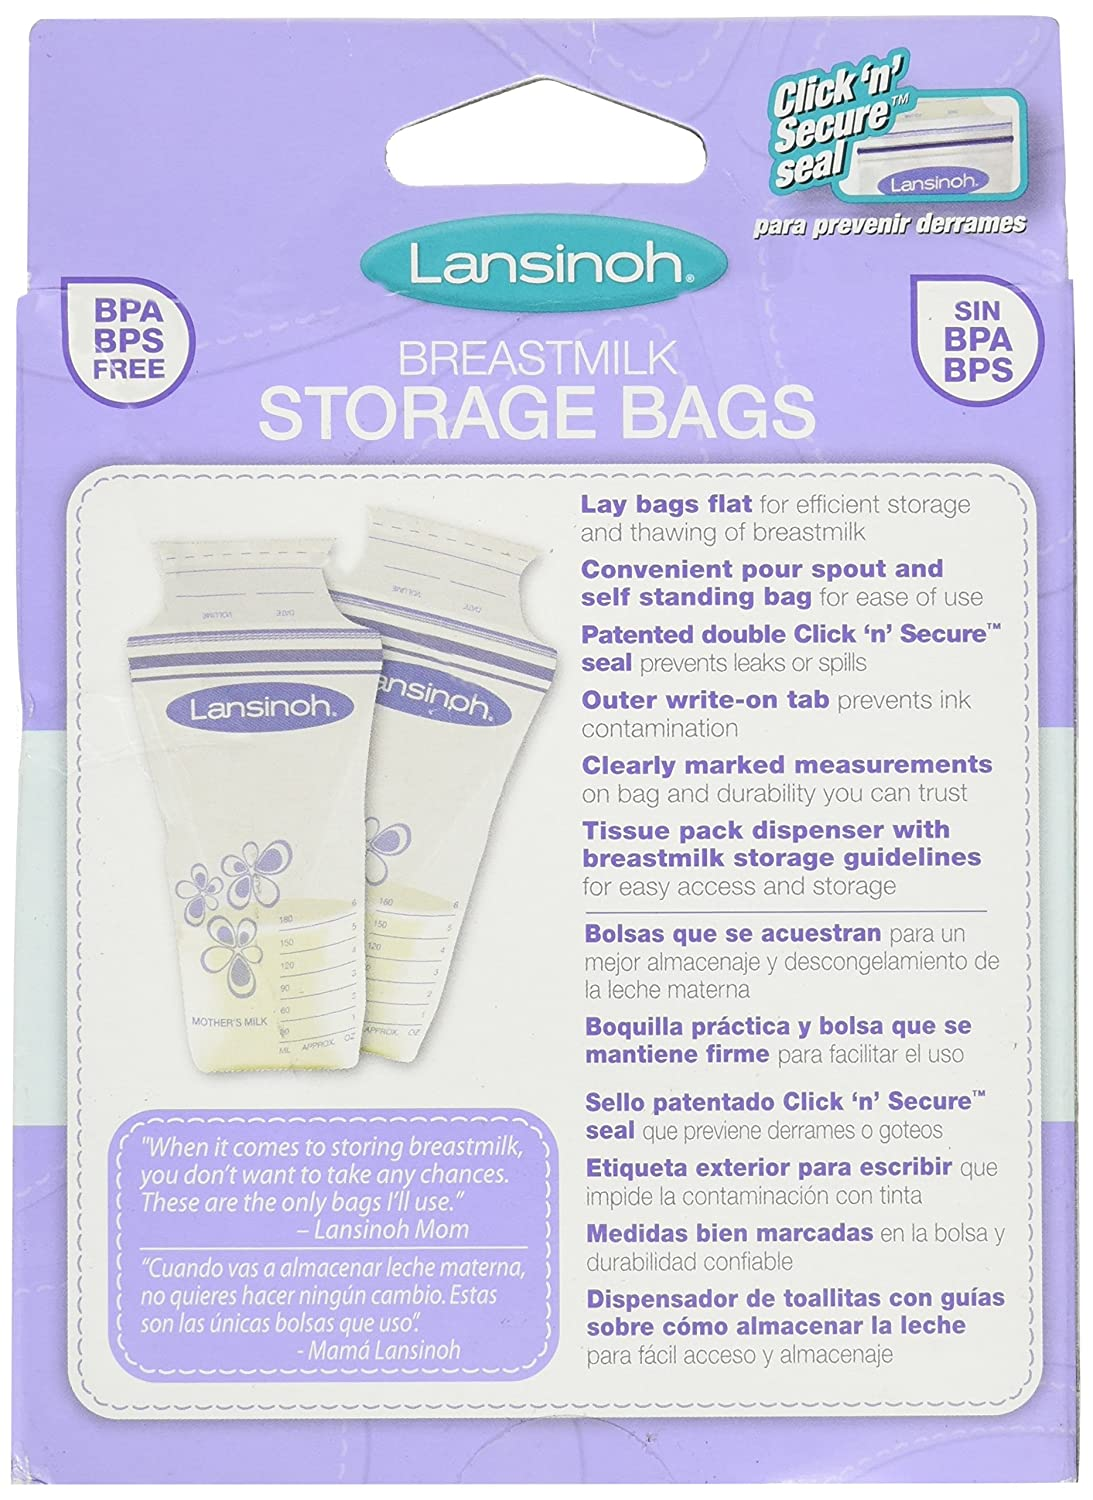 Amazon.com: LANSINOH BREASTMILK STRGE BAGS 50 CT (3 pack): Health & Personal Care